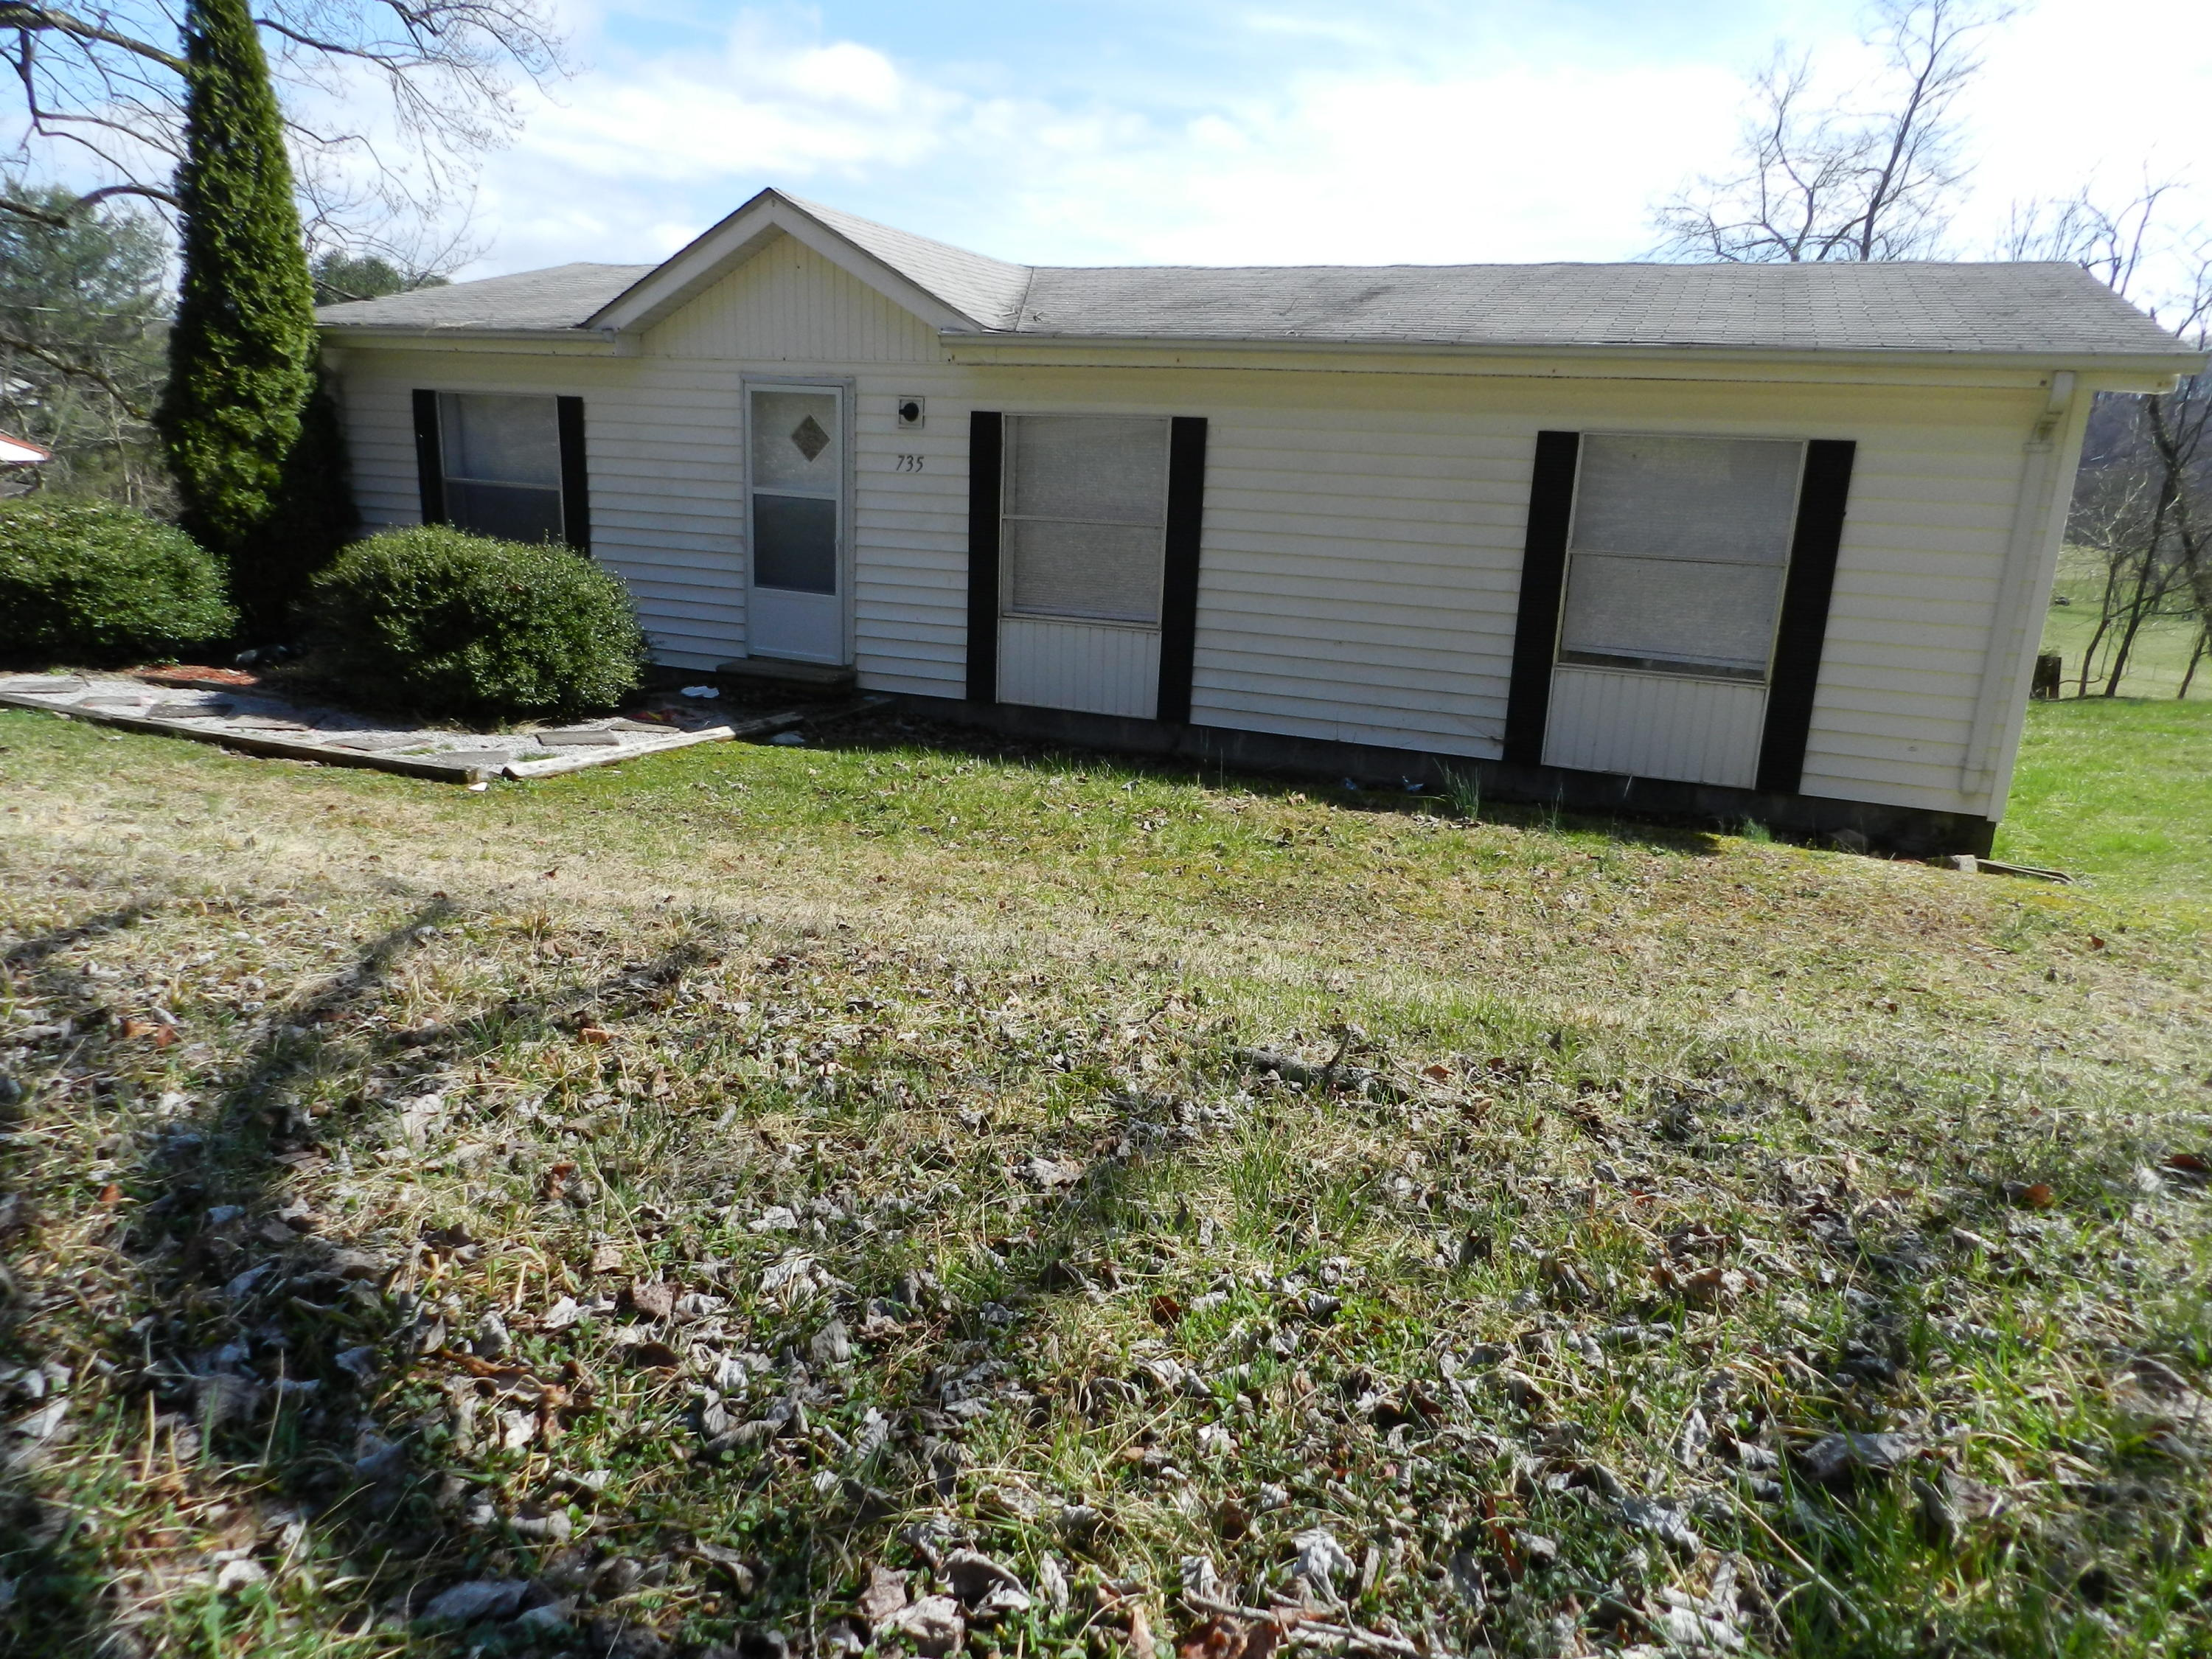 735 Bluff Road, Kingsport, Tennessee 37664, 3 Bedrooms Bedrooms, ,2 BathroomsBathrooms,Single Family,For Sale,735 Bluff Road,9920522